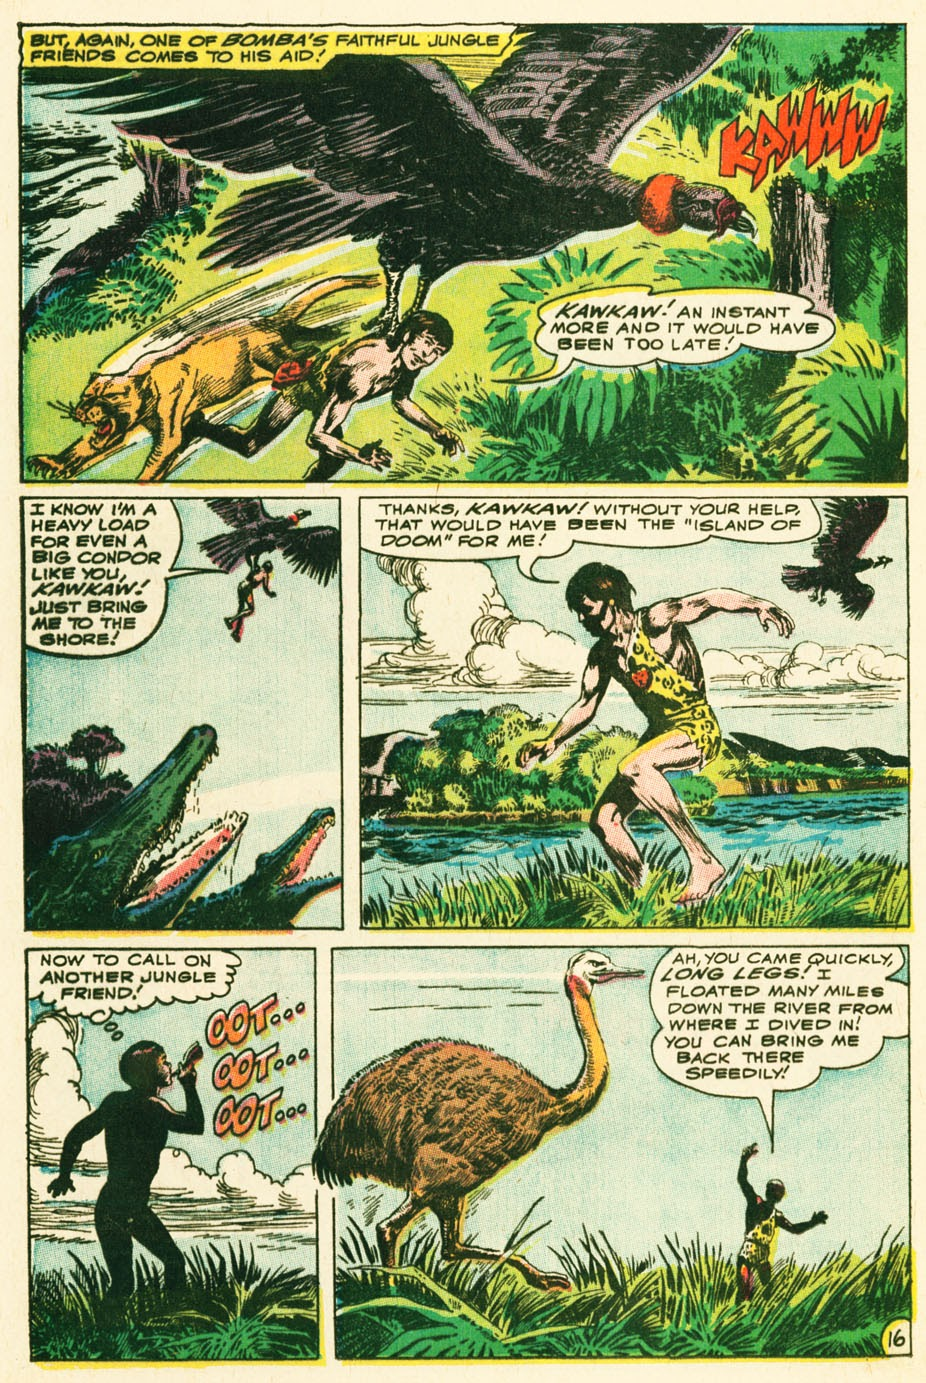 Bomba, The Jungle Boy issue 1 - Page 22